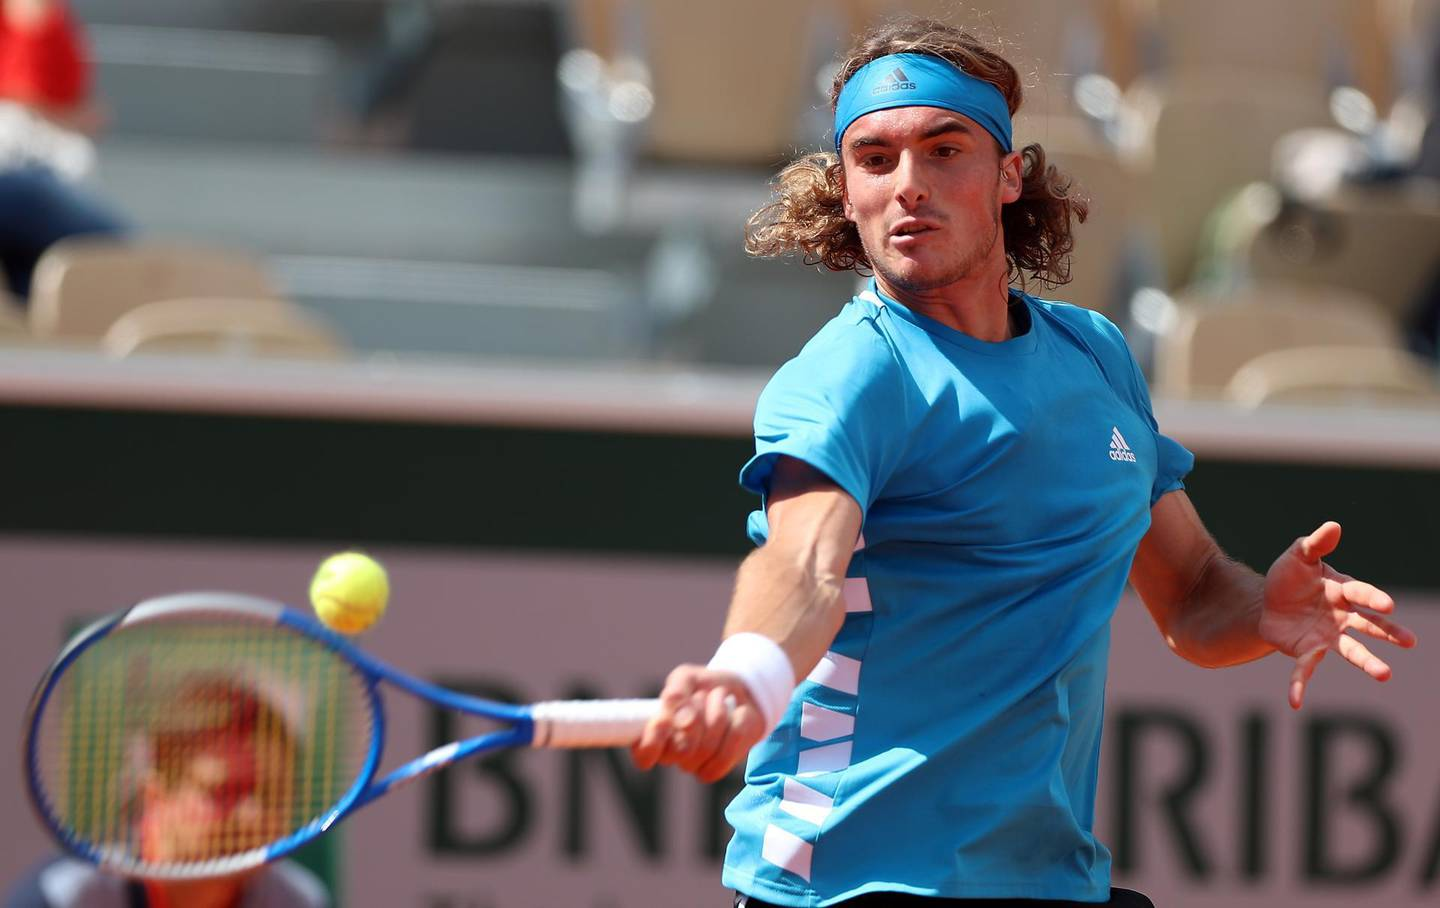 epa07609489 Stefanos Tsitsipas of Greece plays Hugo Dellien of Bolivia  during their men's second round match during the French Open tennis tournament at Roland Garros in Paris, France, 29 May 2019.  EPA/SRDJAN SUKI